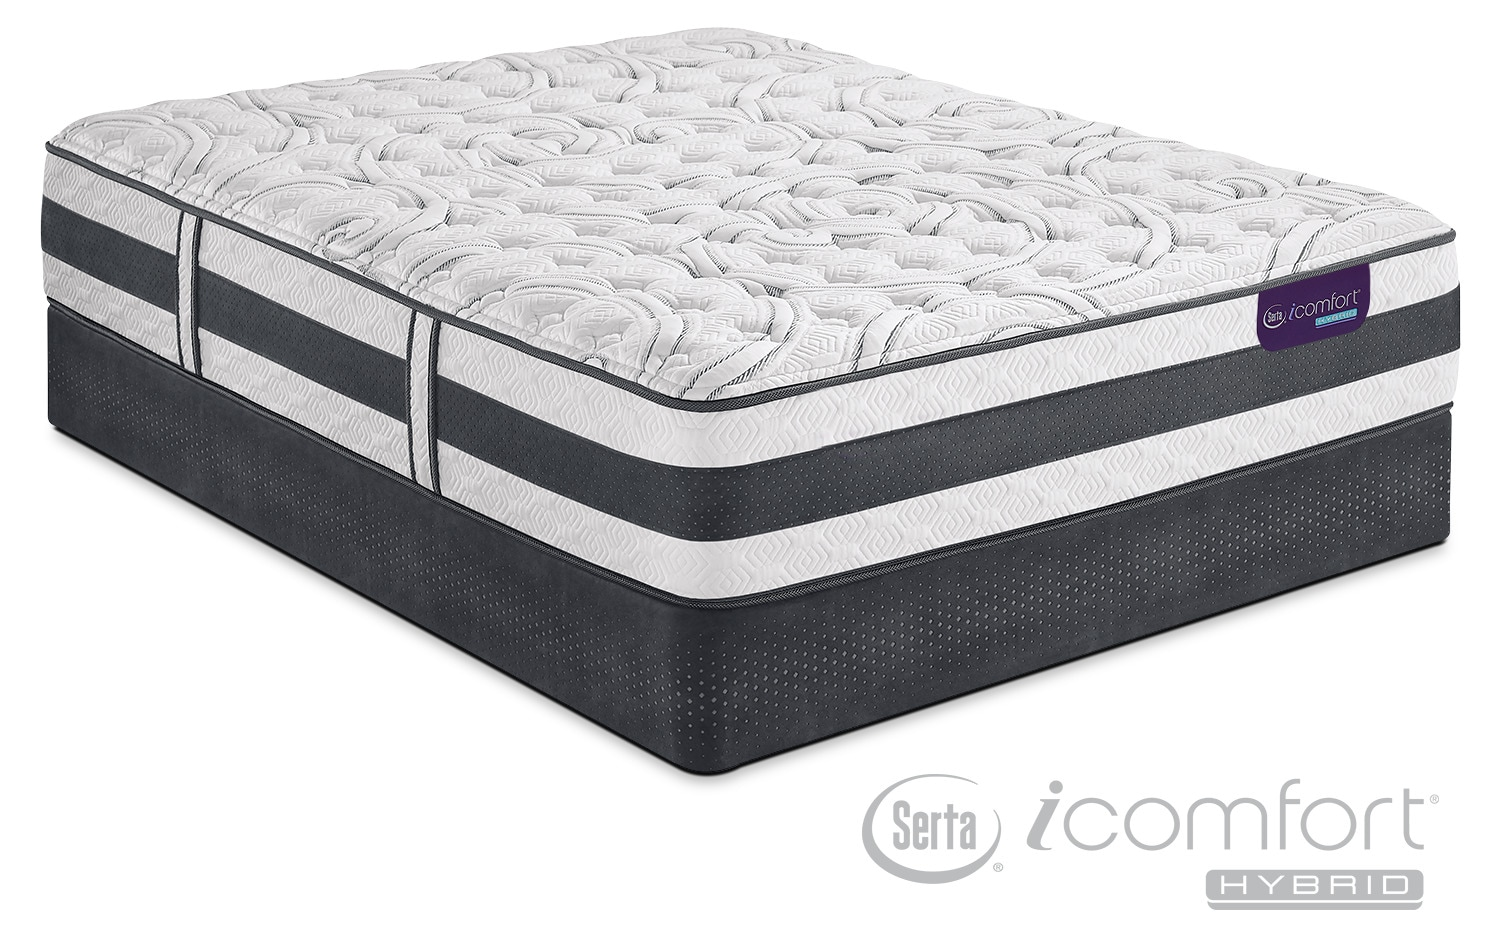 Mattresses and Bedding - Applause II Firm Full Mattress and Foundation Set